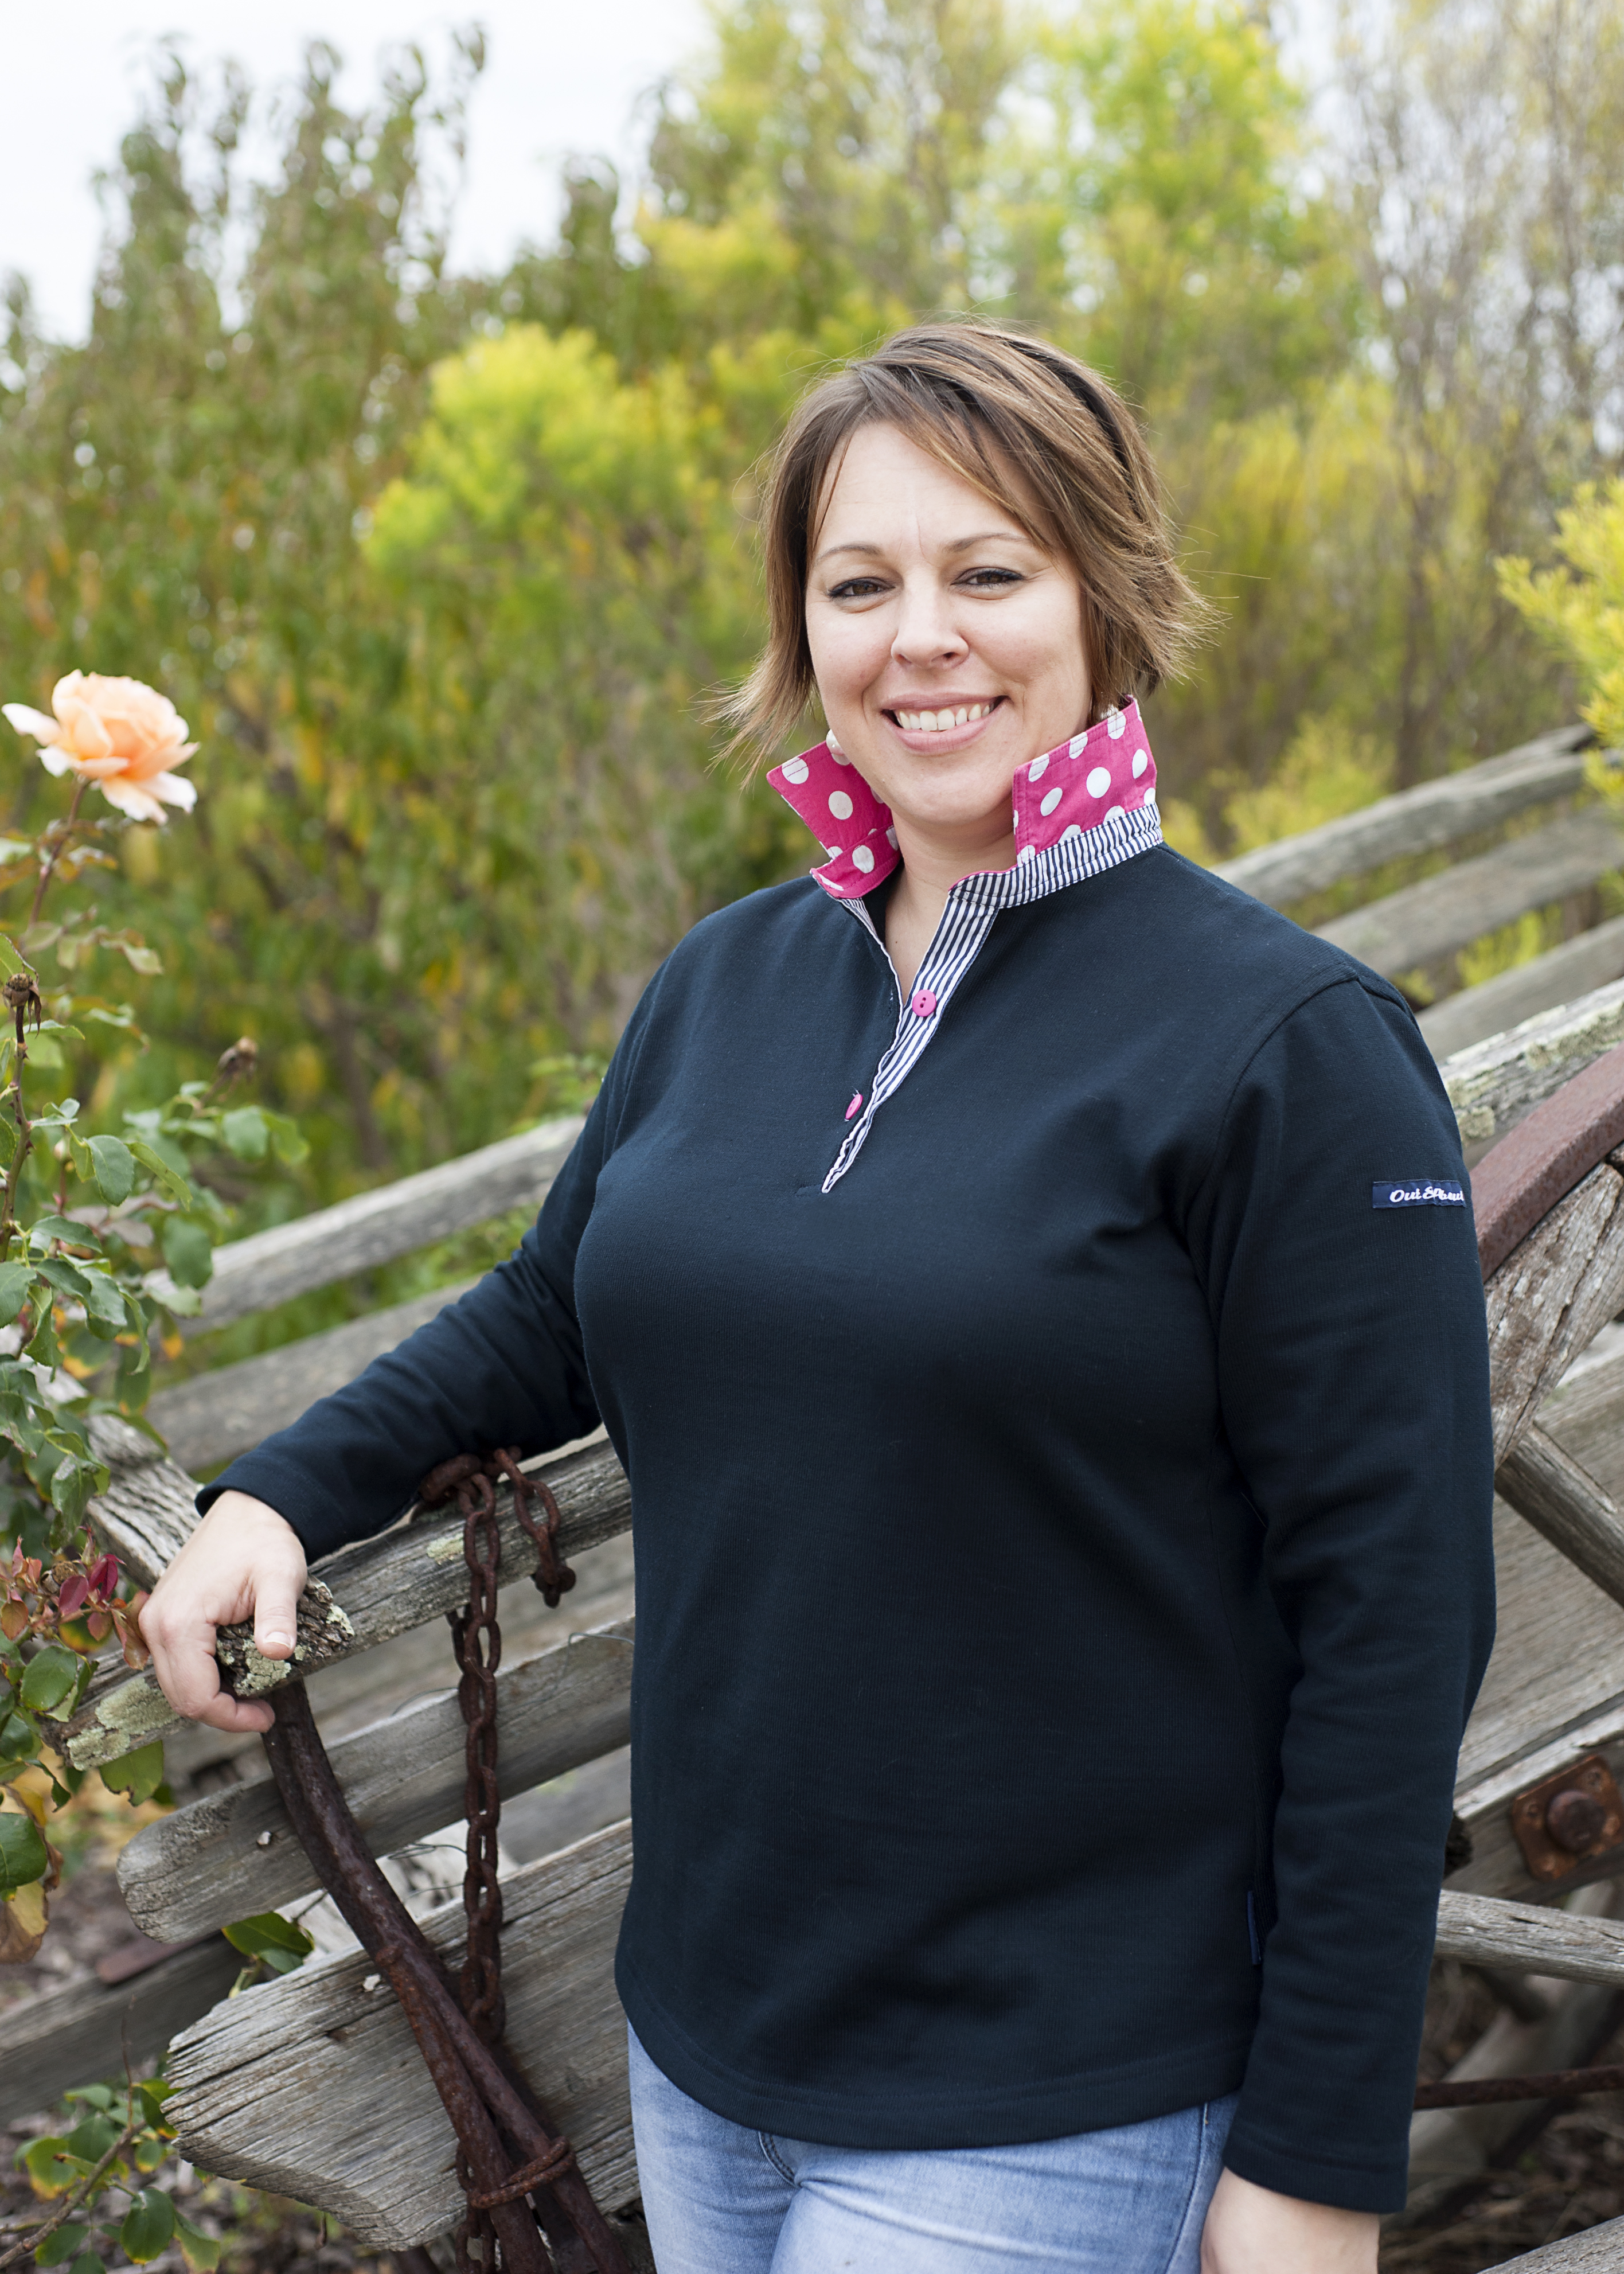 Out & About Clothing | Owner, Christine Rosenzweig